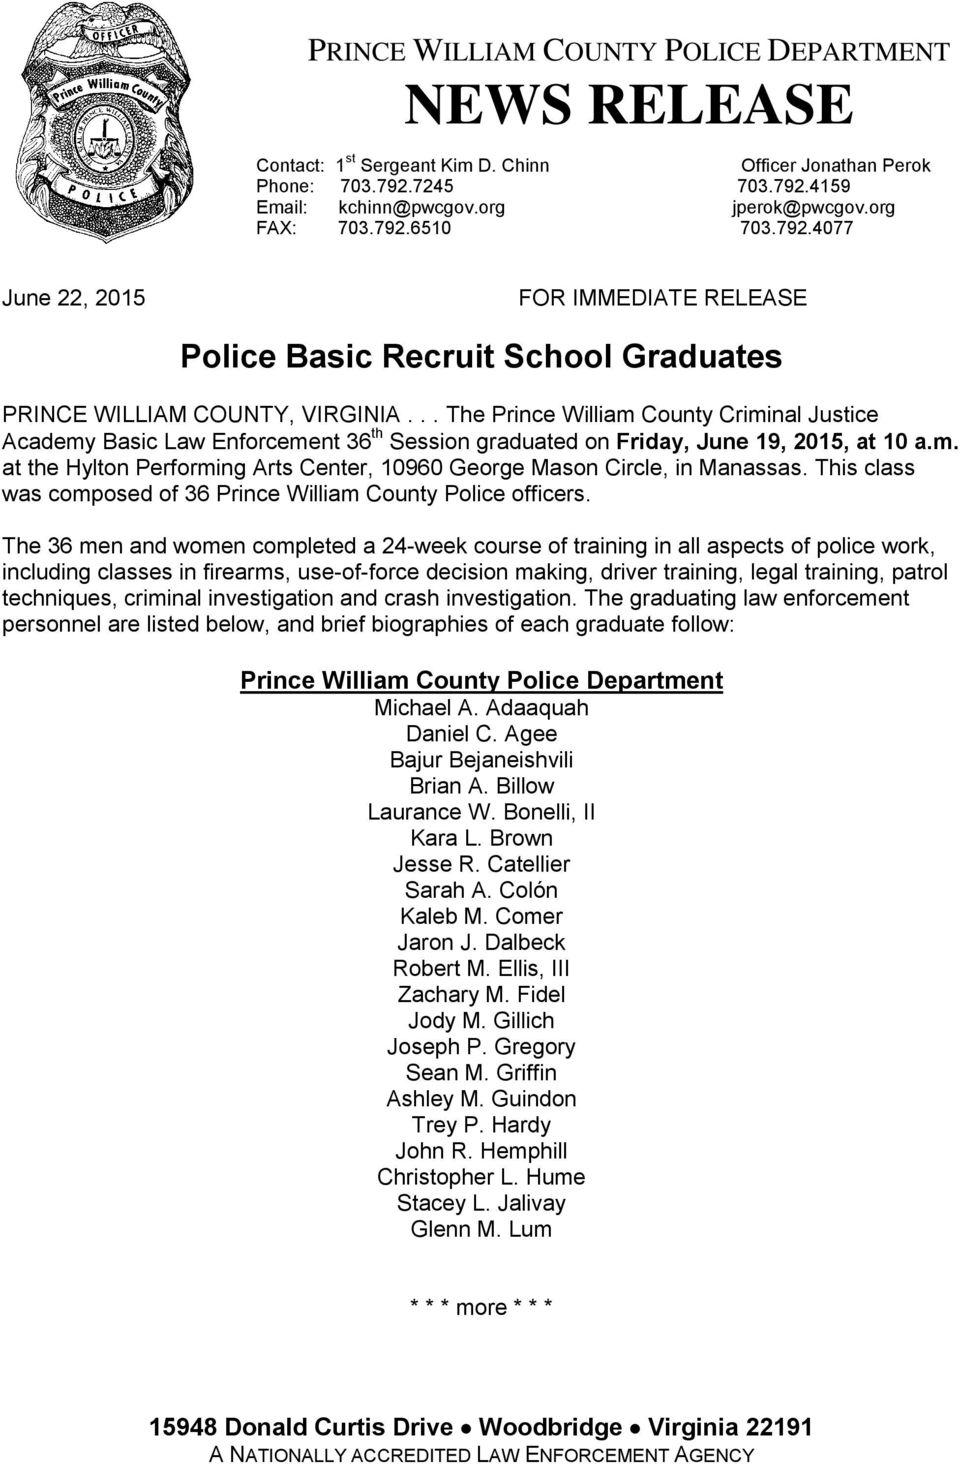 .. The Prince William County Criminal Justice Academy Basic Law Enforcement 36 th Session graduated on Friday, June 19, 2015, at 10 a.m. at the Hylton Performing Arts Center, 10960 George Mason Circle, in Manassas.